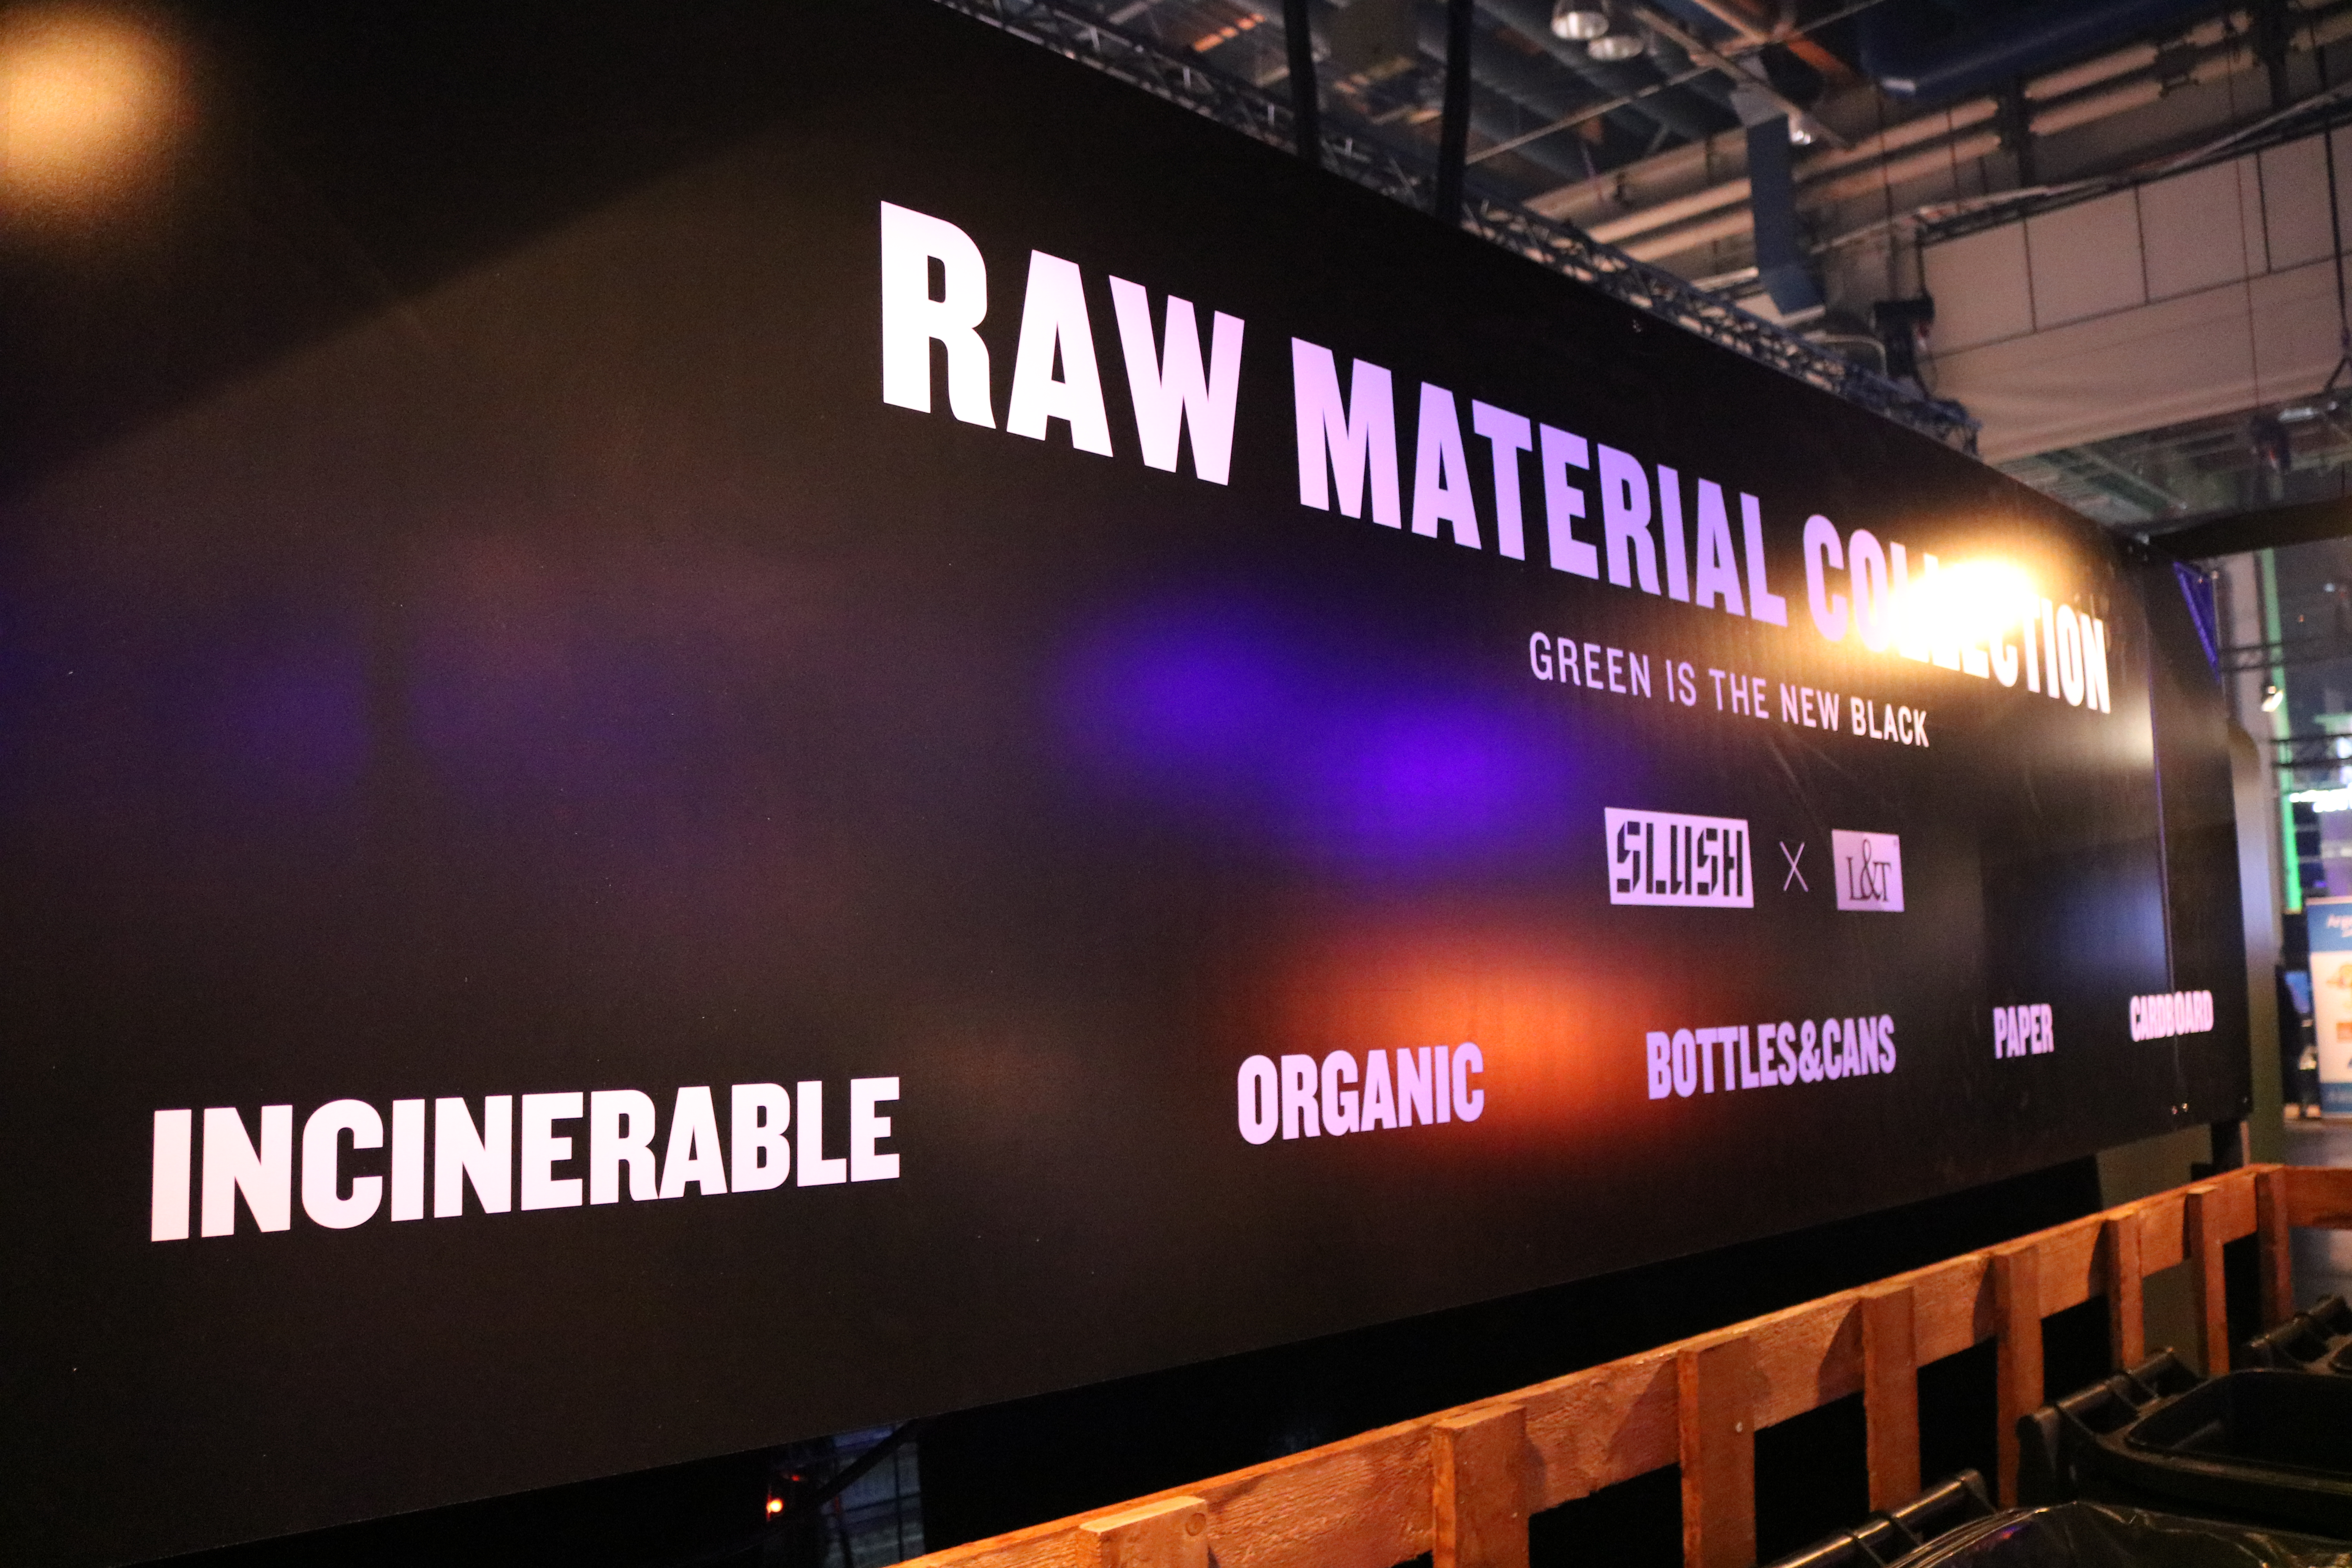 At Slush, there's no waste, just raw material for further use.